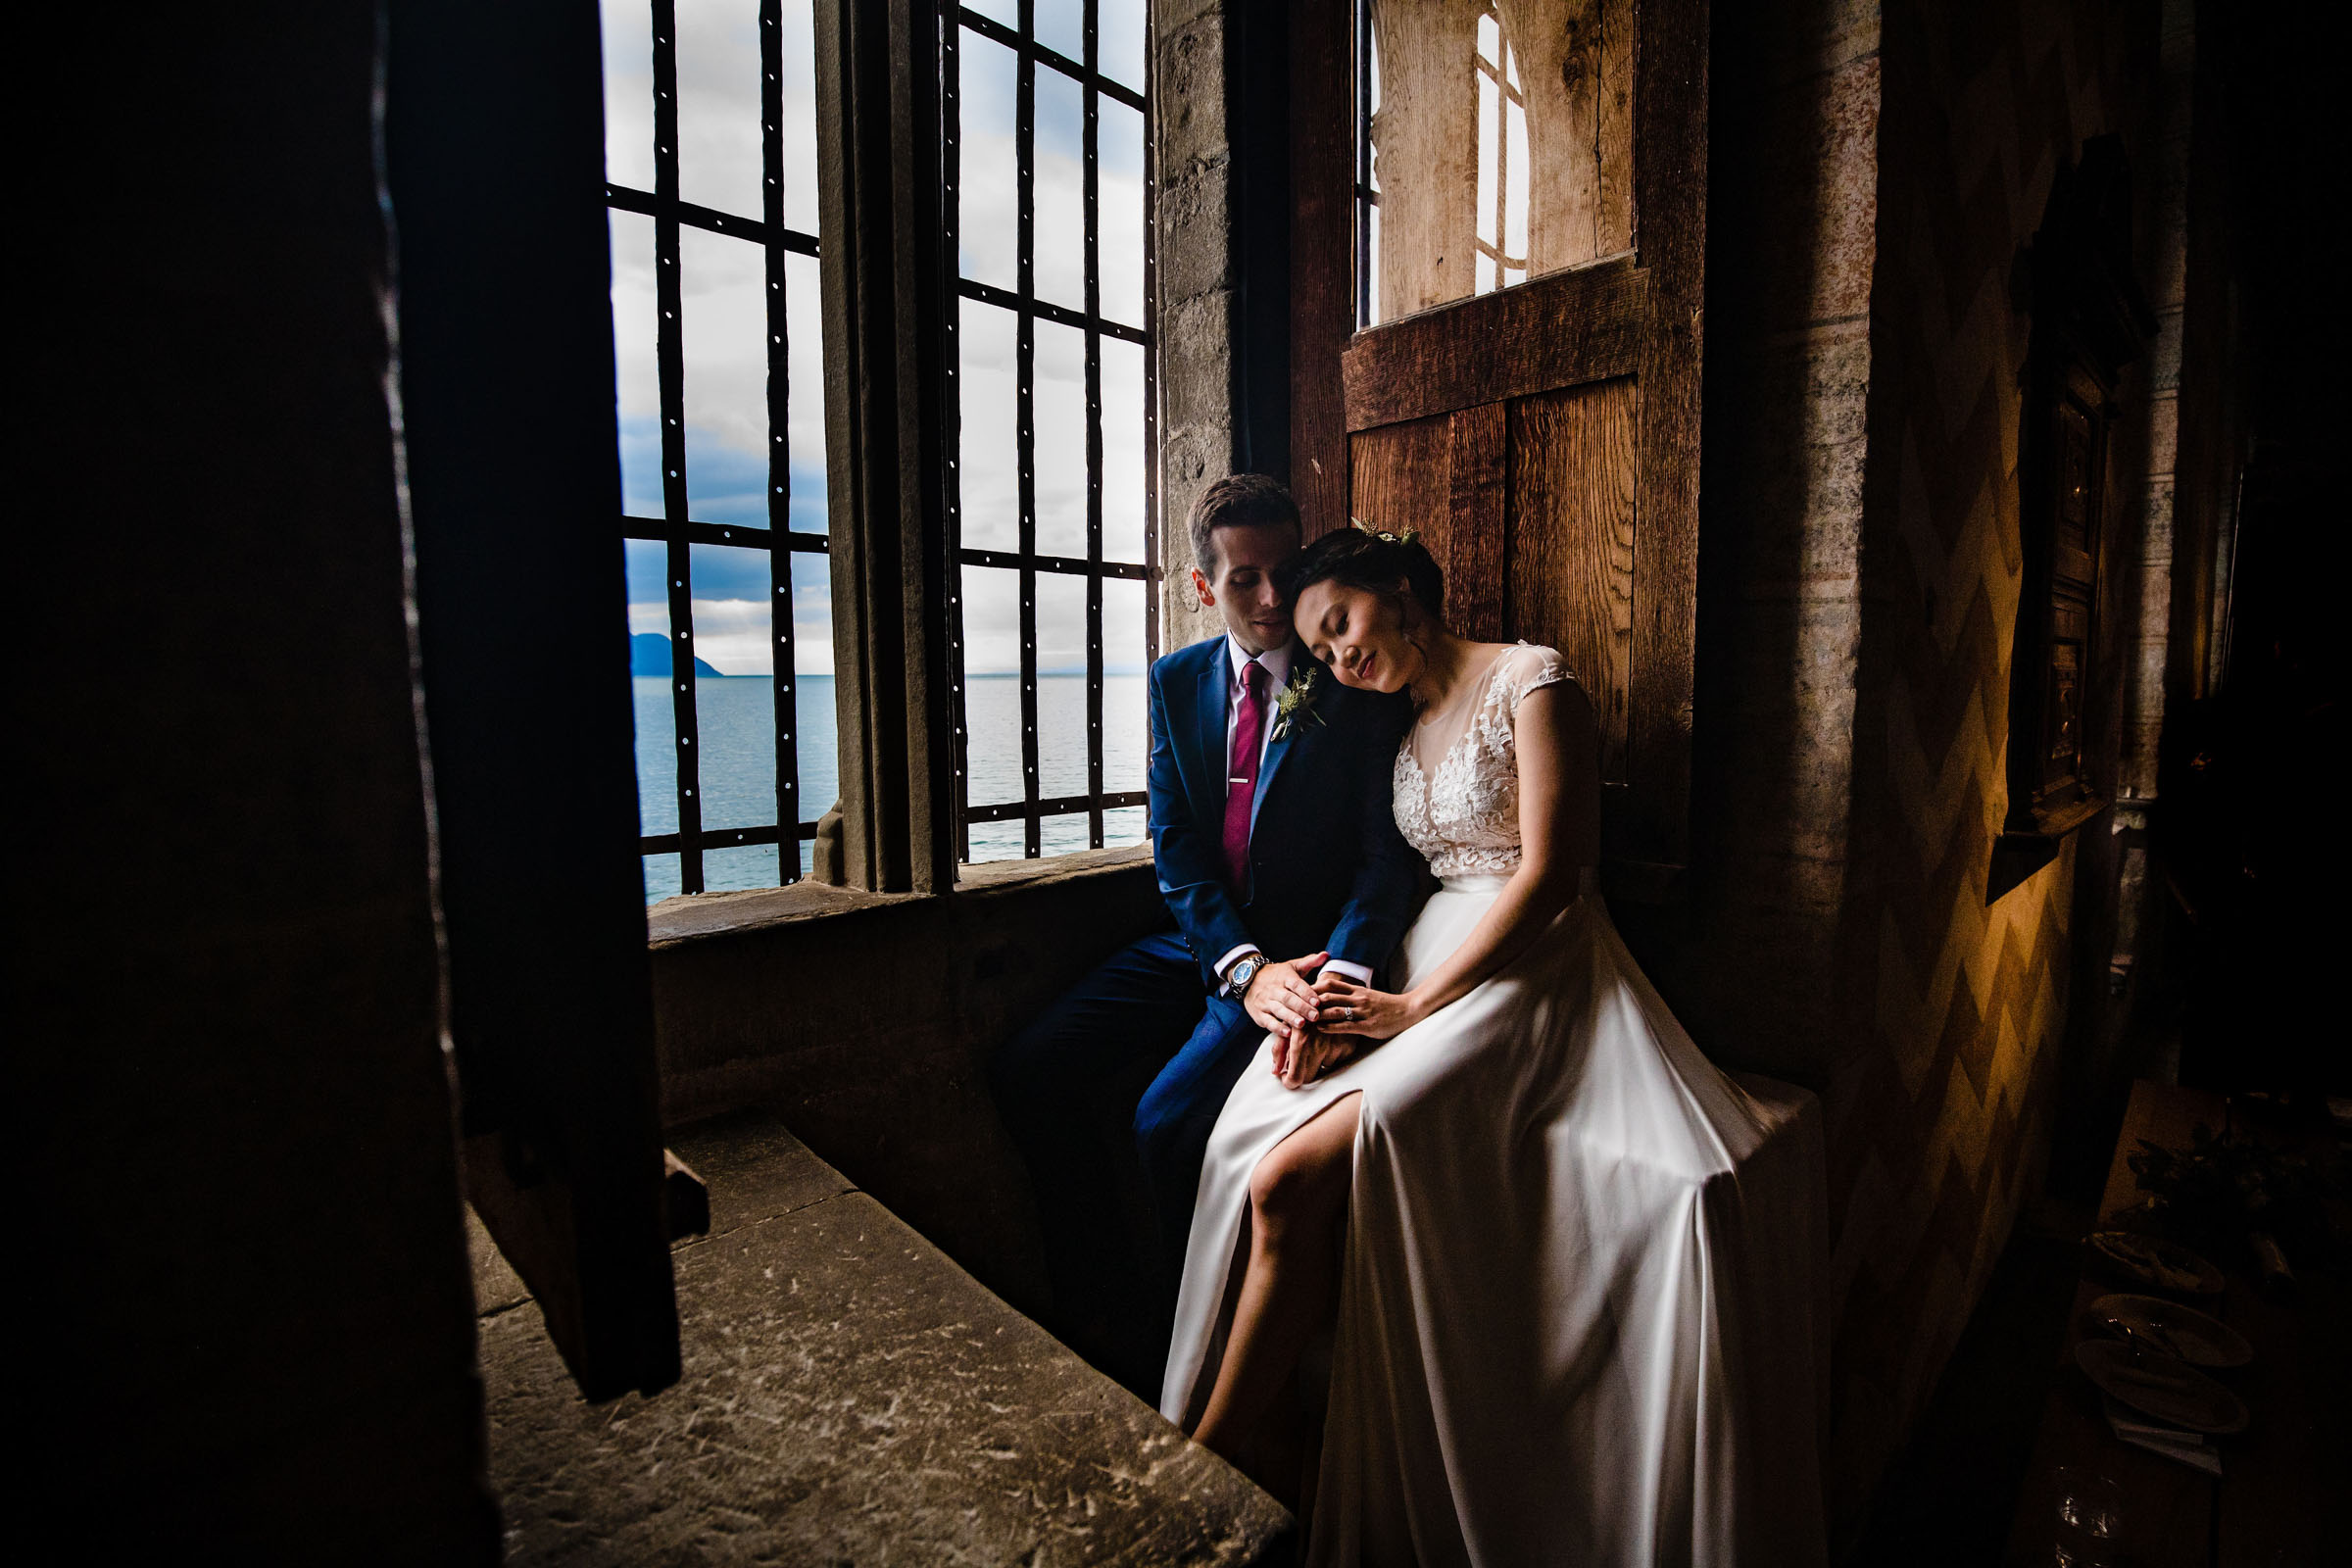 Couple by window in rustic indoor setting - photo by Marissa Joy Photography